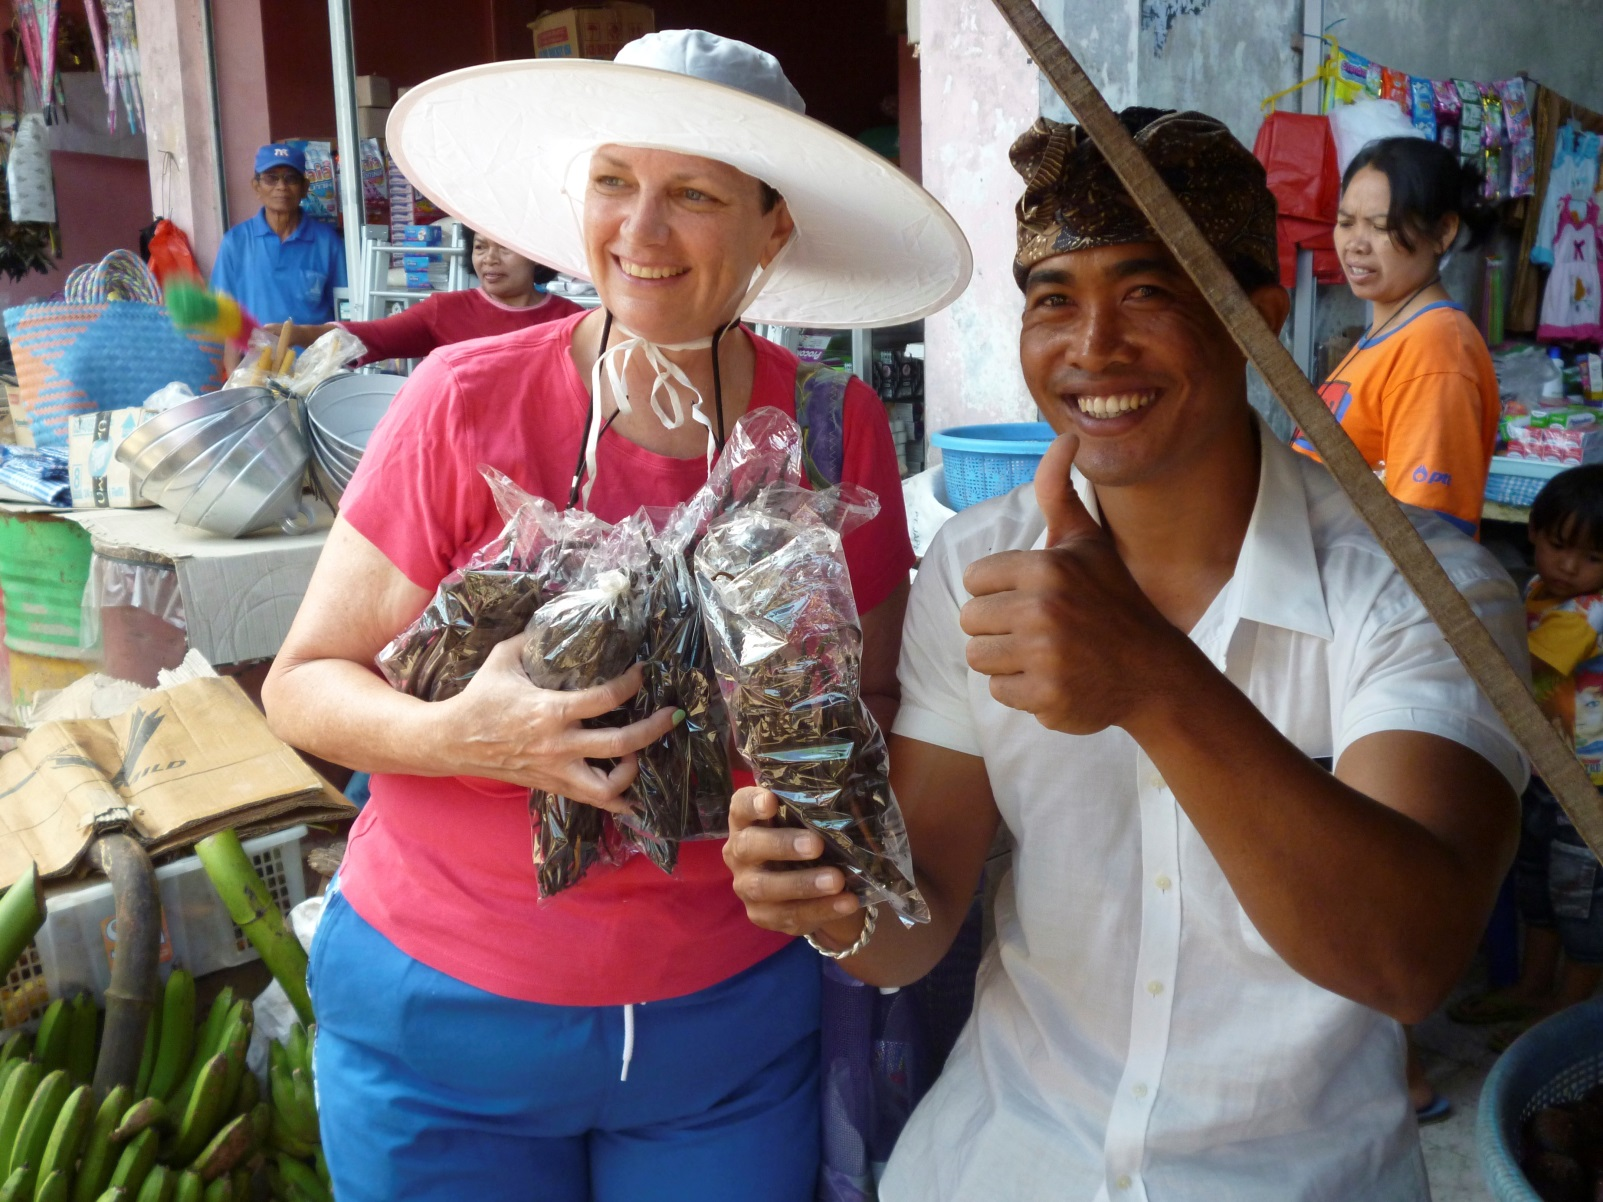 Buying spices at the local market – like vanilla beans!!